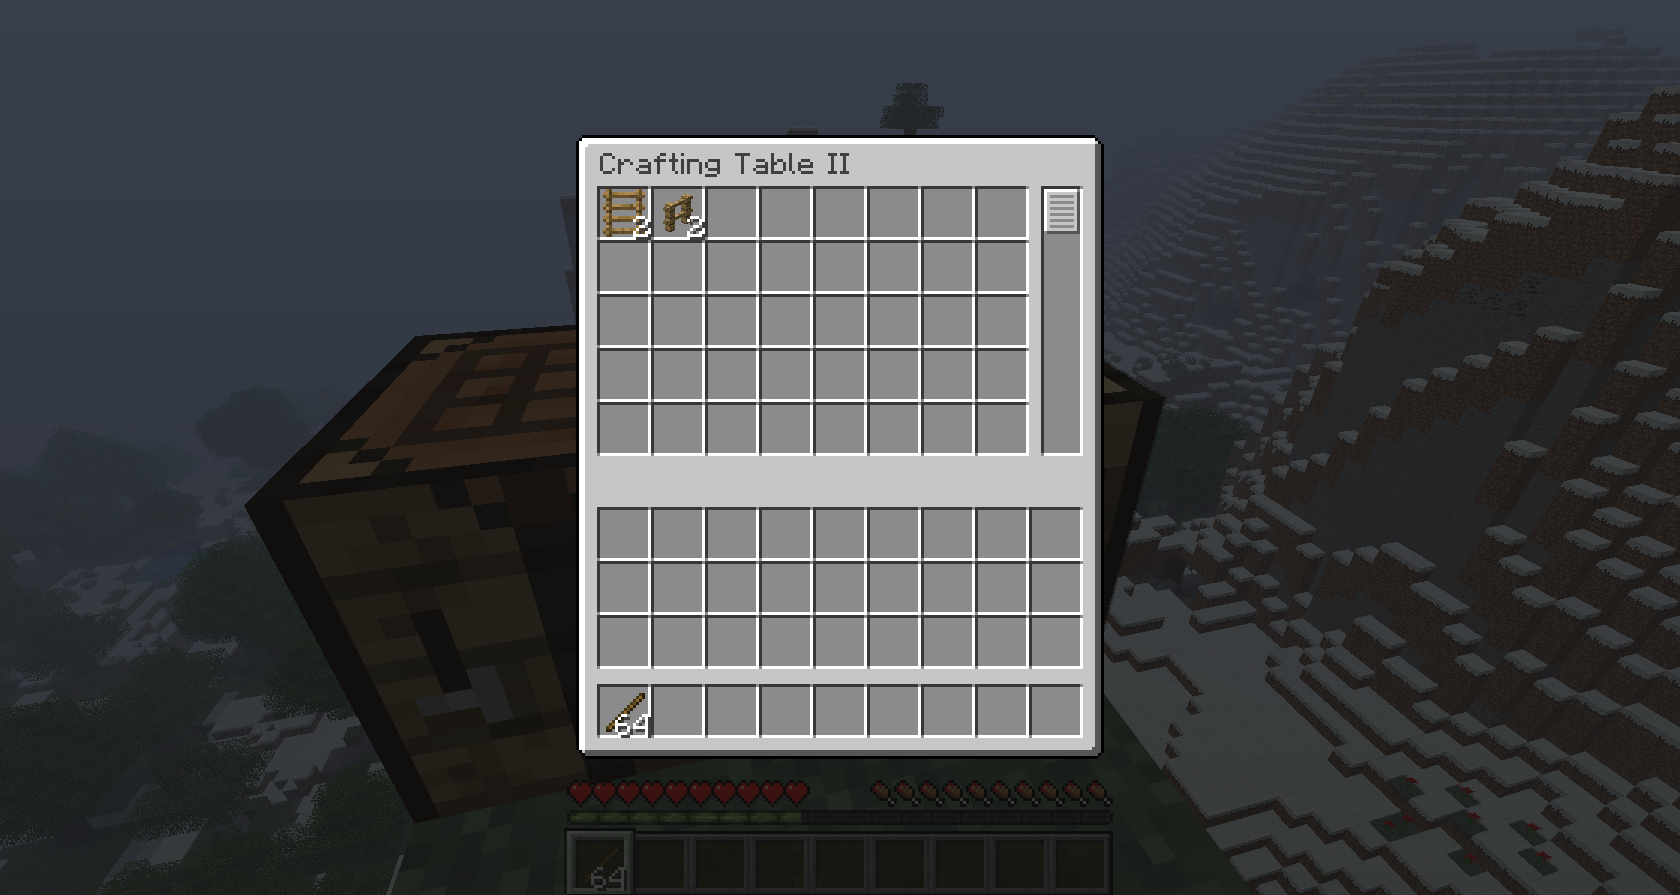 2011 12 12 20.12.37 [1.0.0] Crafting Table II